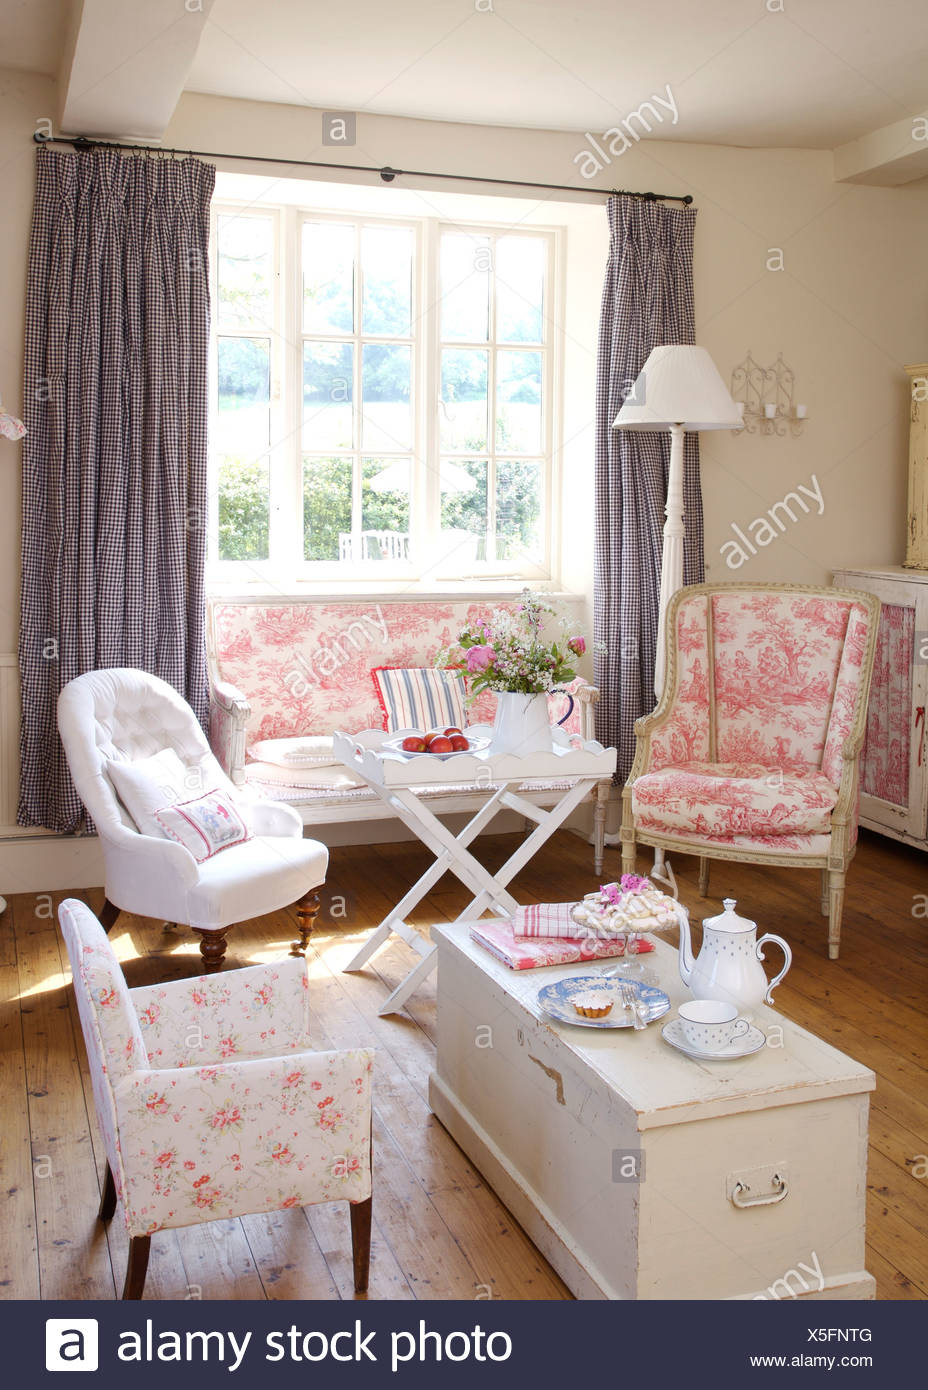 Gentil Pink Toile De Joule Chair And Small Sofa In Cottage Living Room With White  Armchair And White Painted Chest